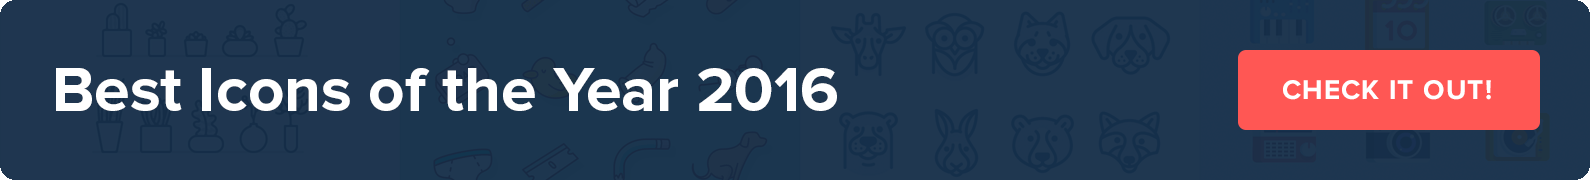 best-icons-of-the-year-2016